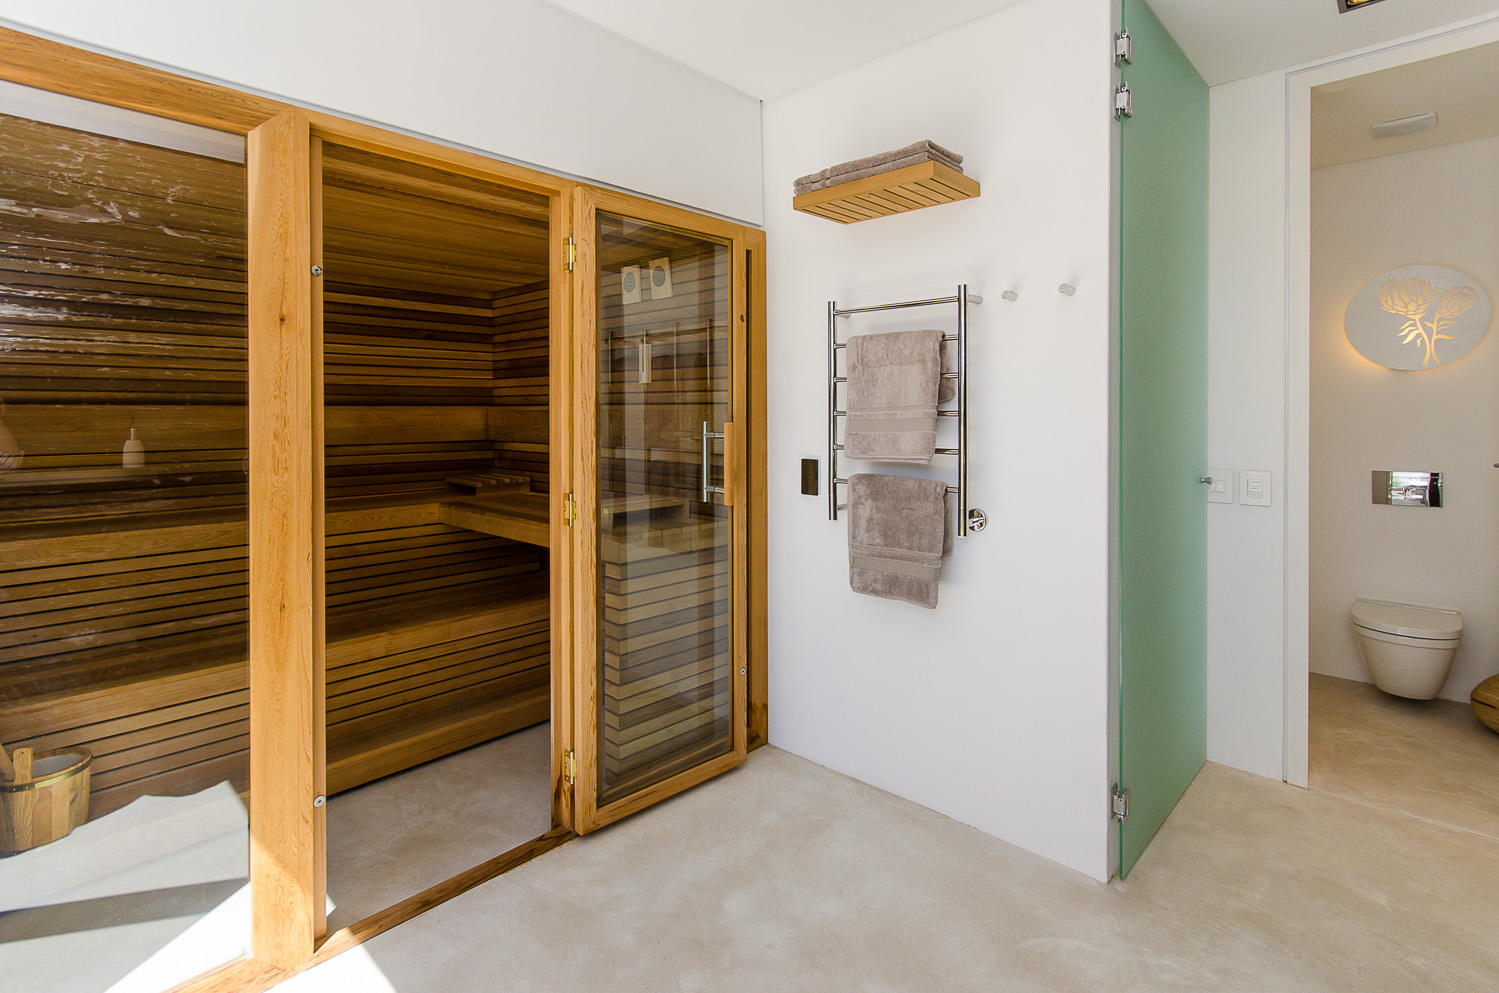 A Sauna Must Be Able To Cope With Both Dry Heat And Clouds Of Steam. Sauna  King Saunas Are Built For All Kinds Of Bathing   Dry Saunas, Wet Saunas, ...